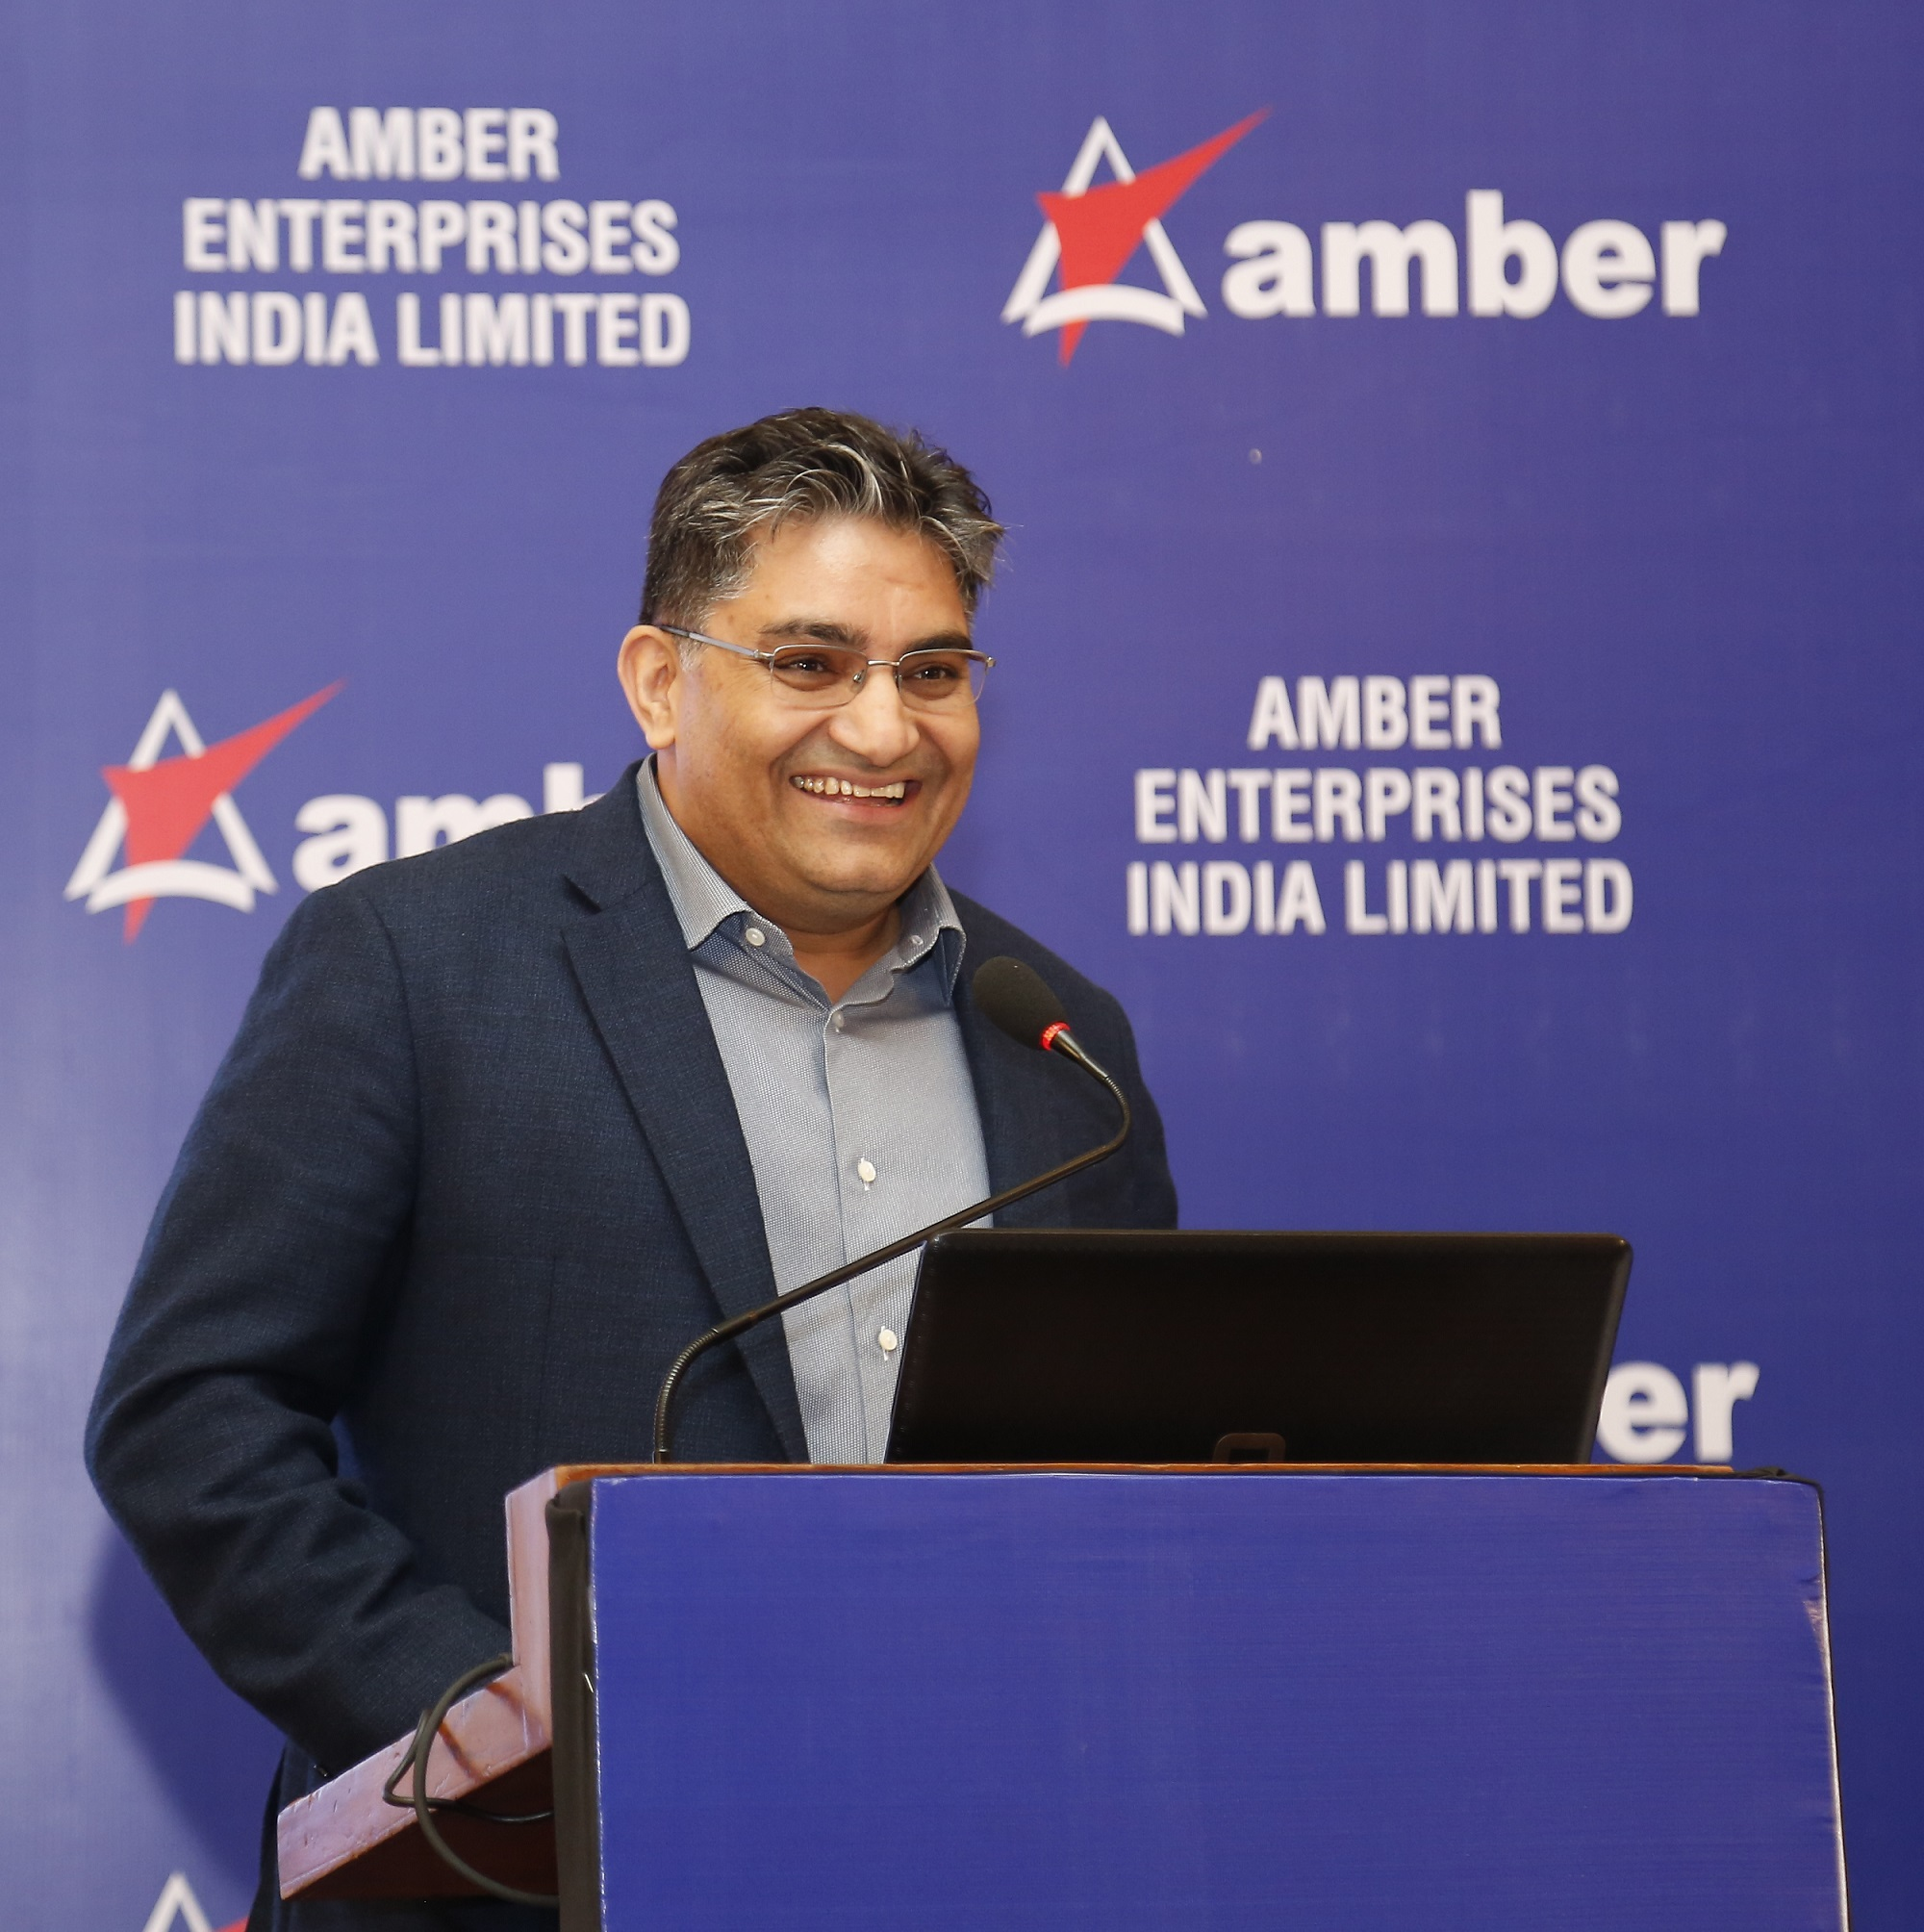 Amber ipo price in india